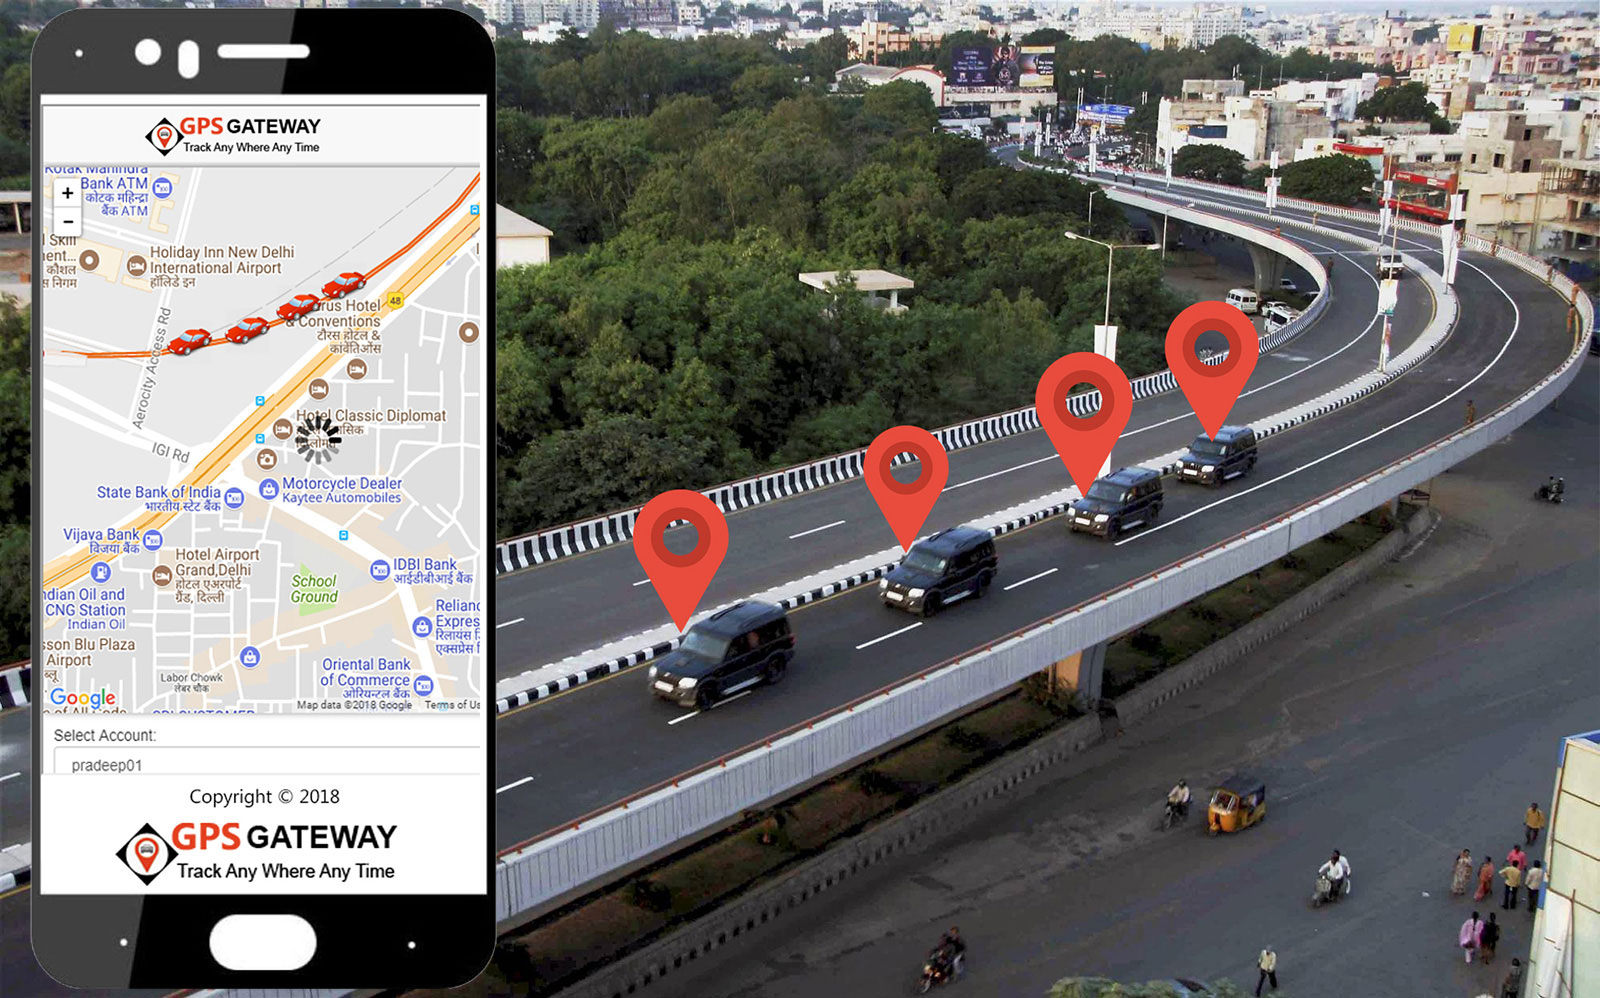 vehicle tracking system in india, car tracking device in india, trackr india, gps tracker for bike india, gps for car india